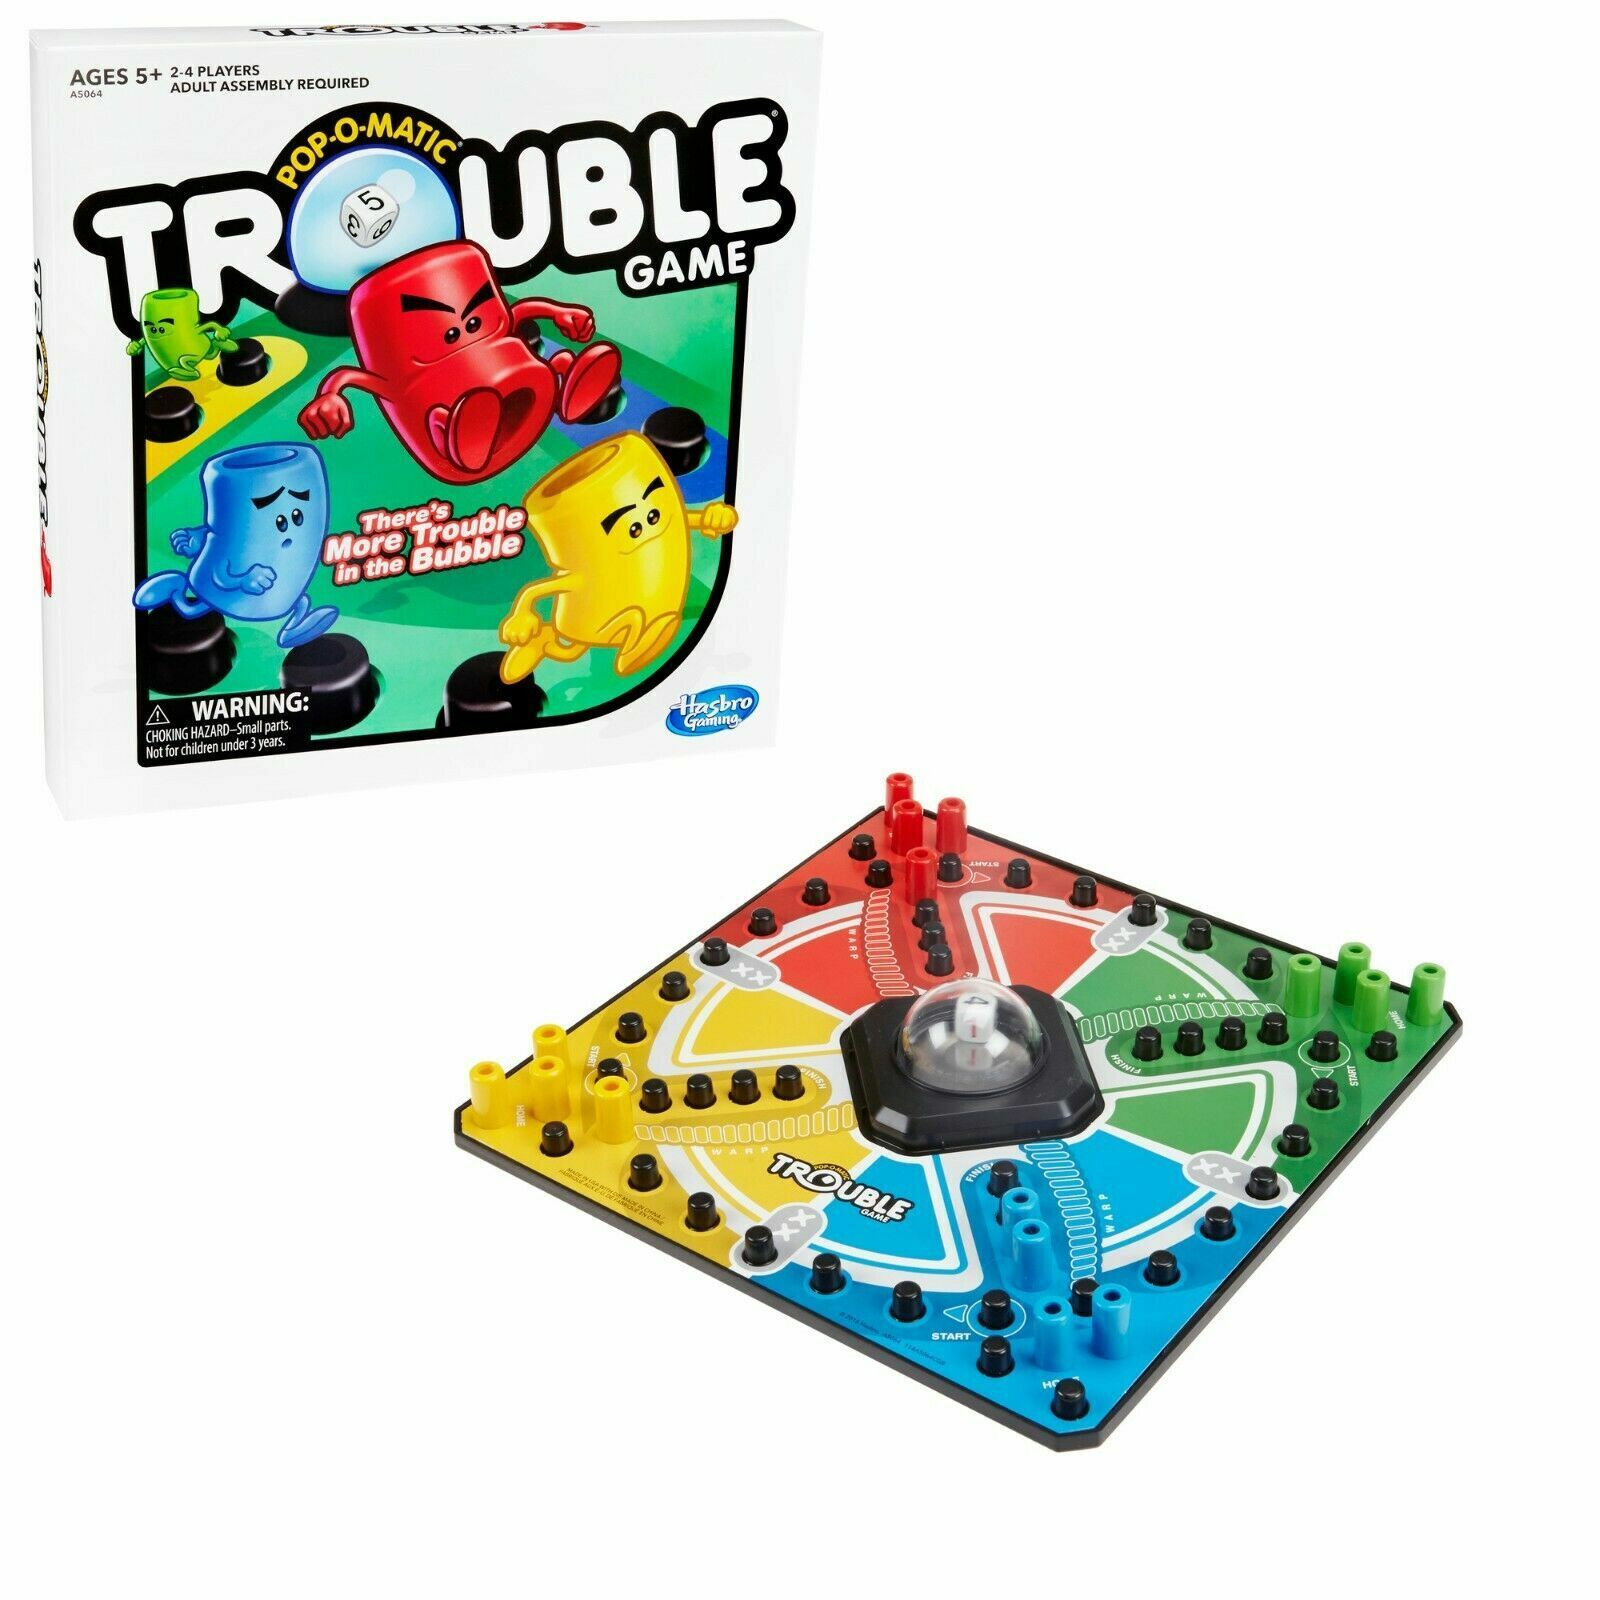 Trouble Board Game for Kids Ages 5 & Up, 2-4 Players A5064 TOY